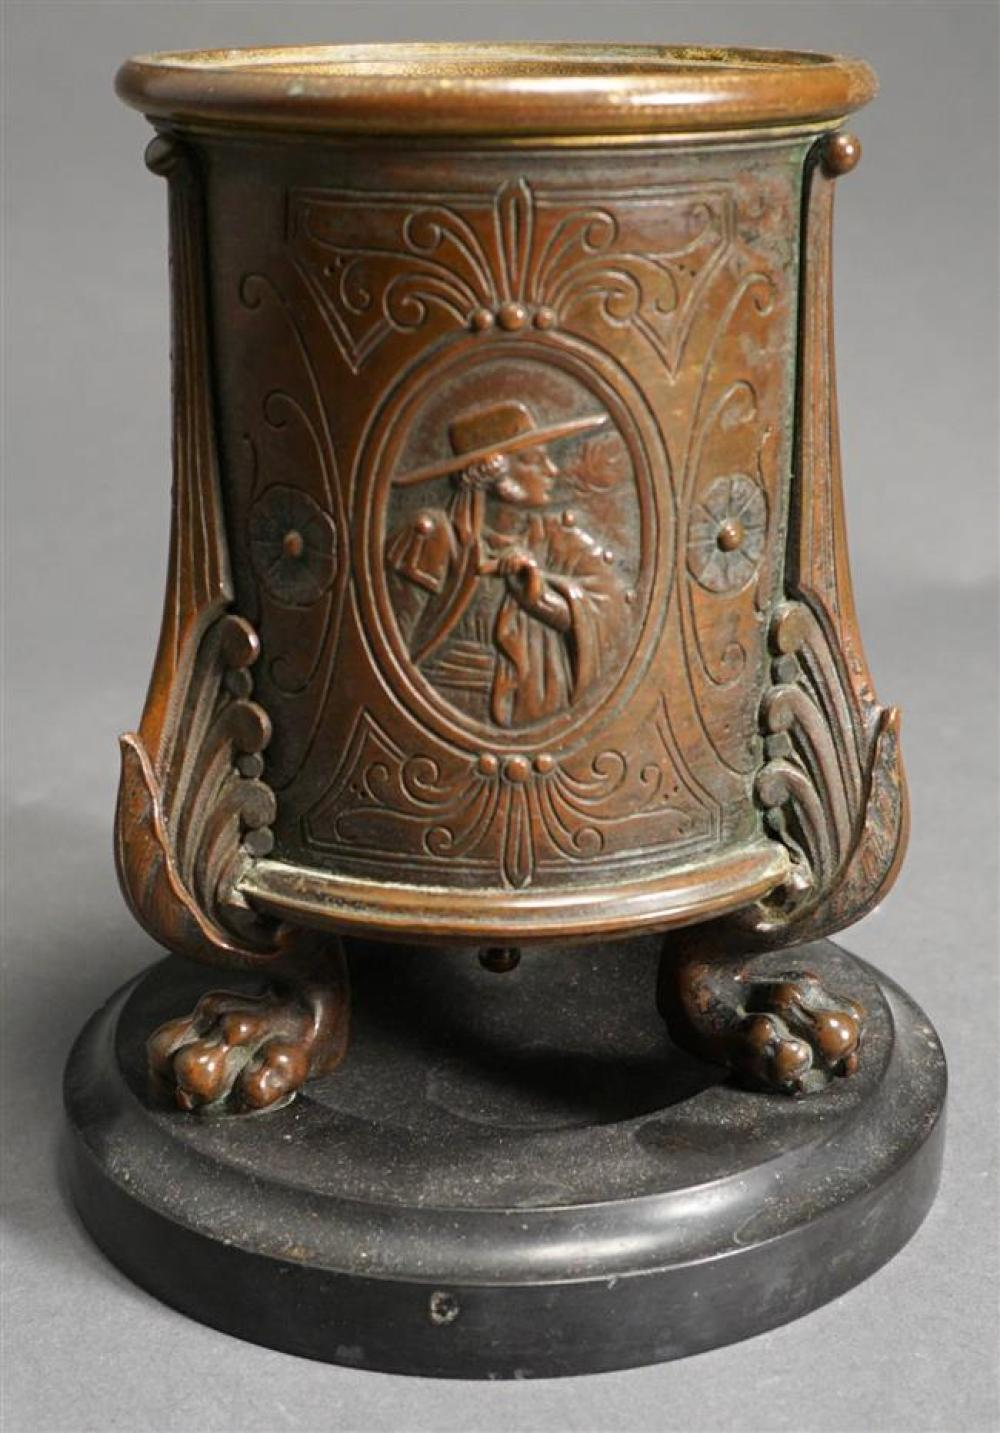 Neoclassical Style Bronze Tobacco Urn on Marble Plinth, H: 6-1/2 inches